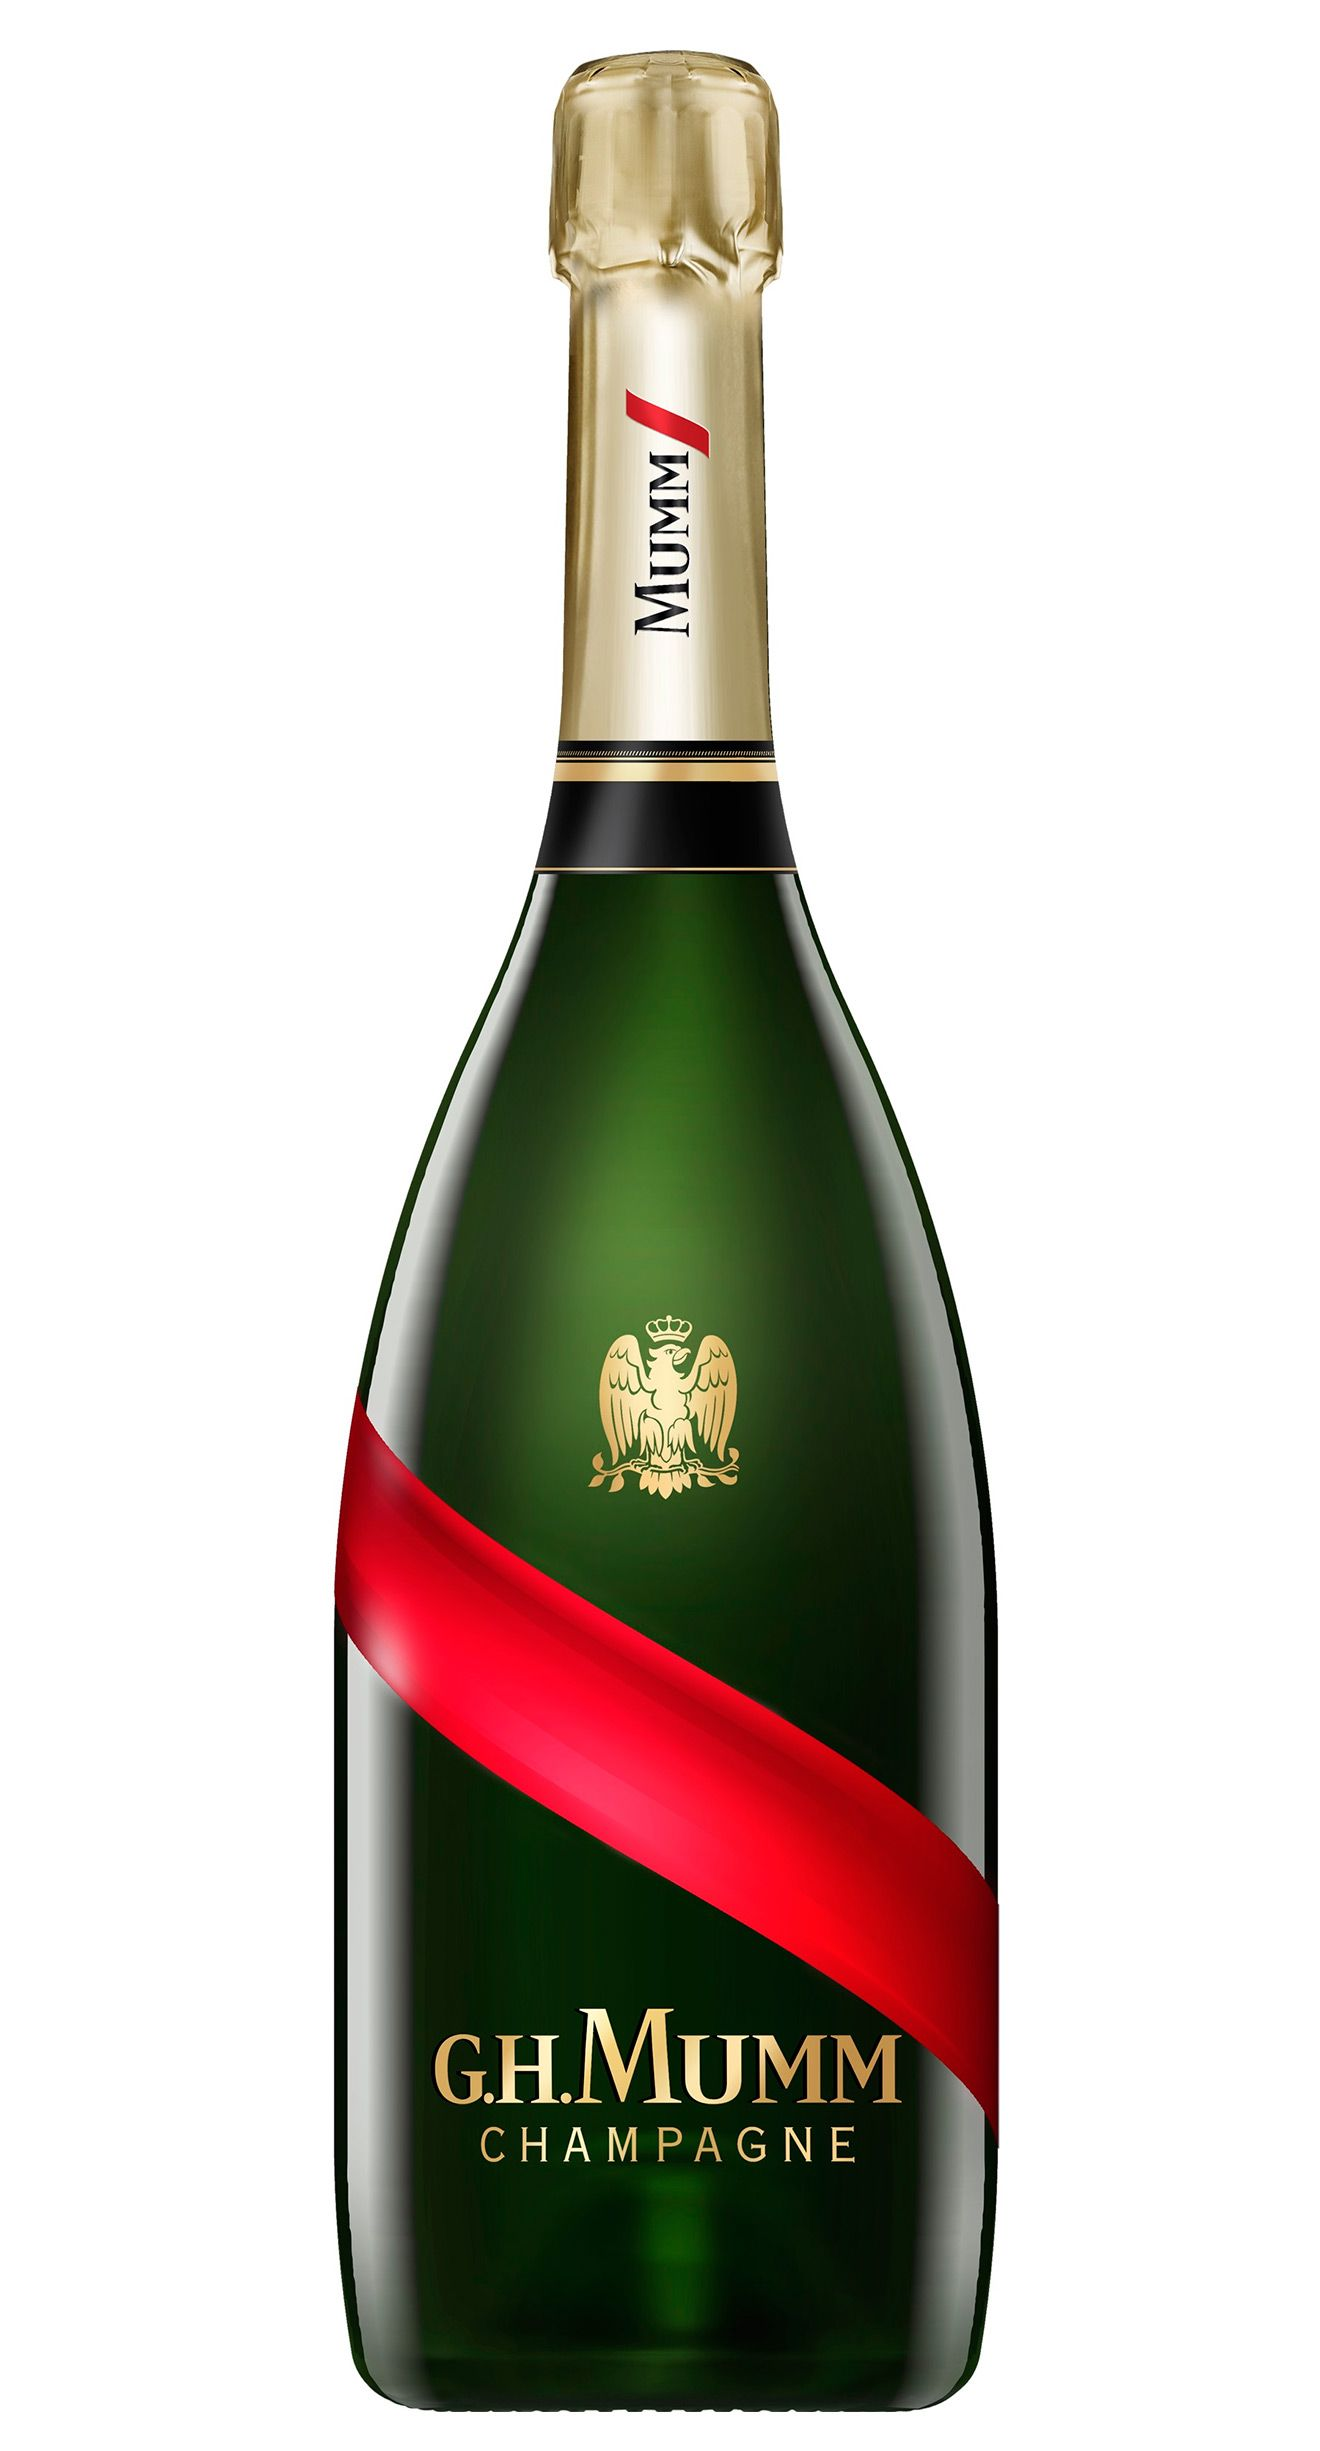 Maison Mumm Launches Revolutionary New Bottle in US